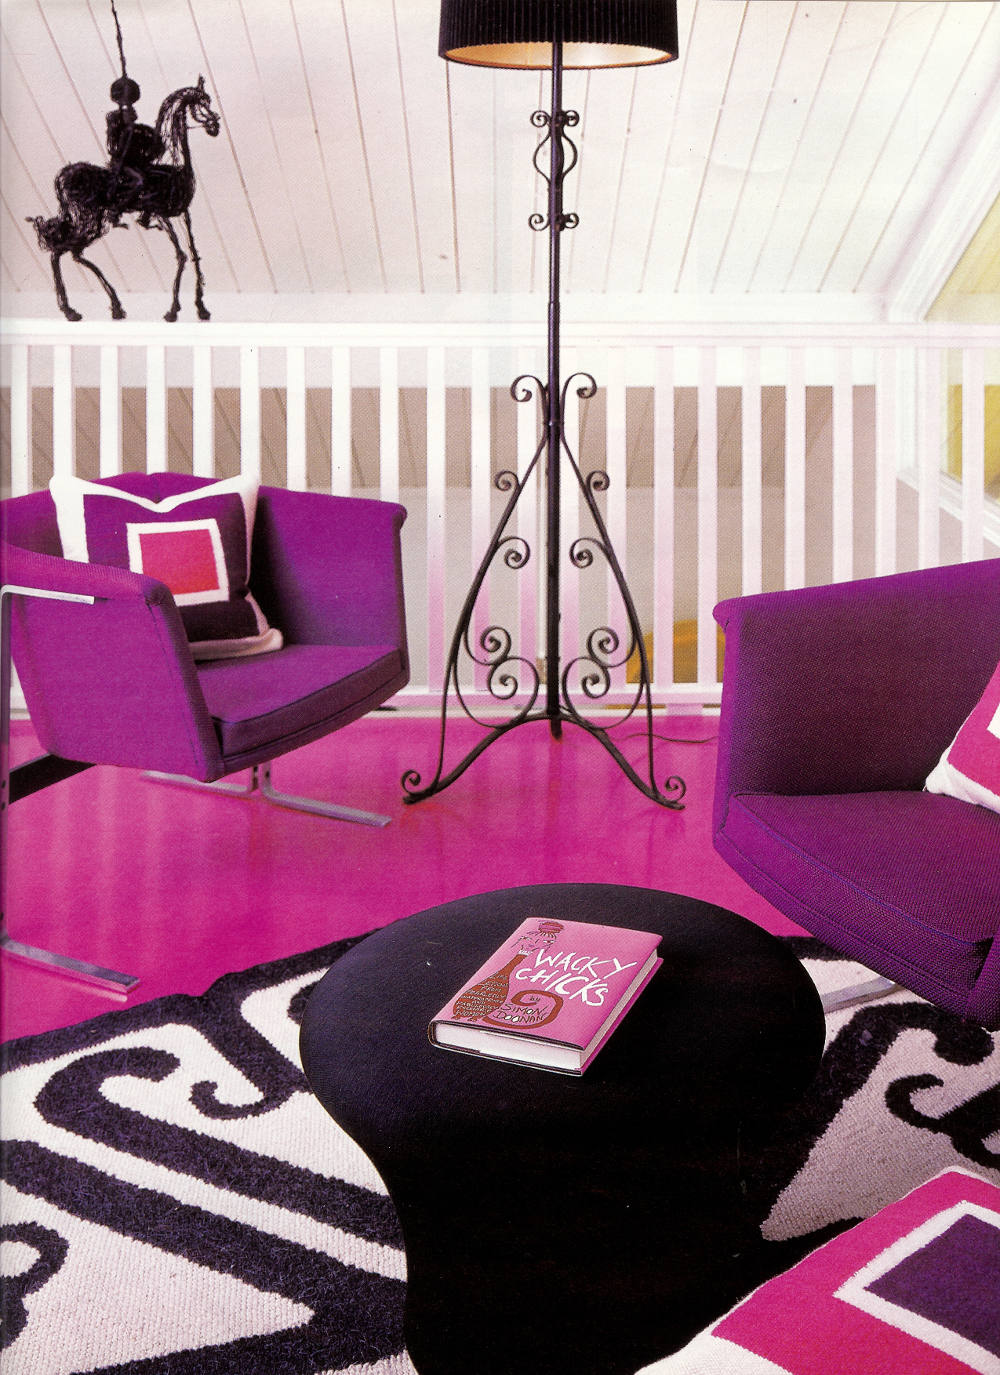 jonathan adler and simon doonan's long island beach house - loft seating area - Hamptons Cottages & Gardens via Atticmag